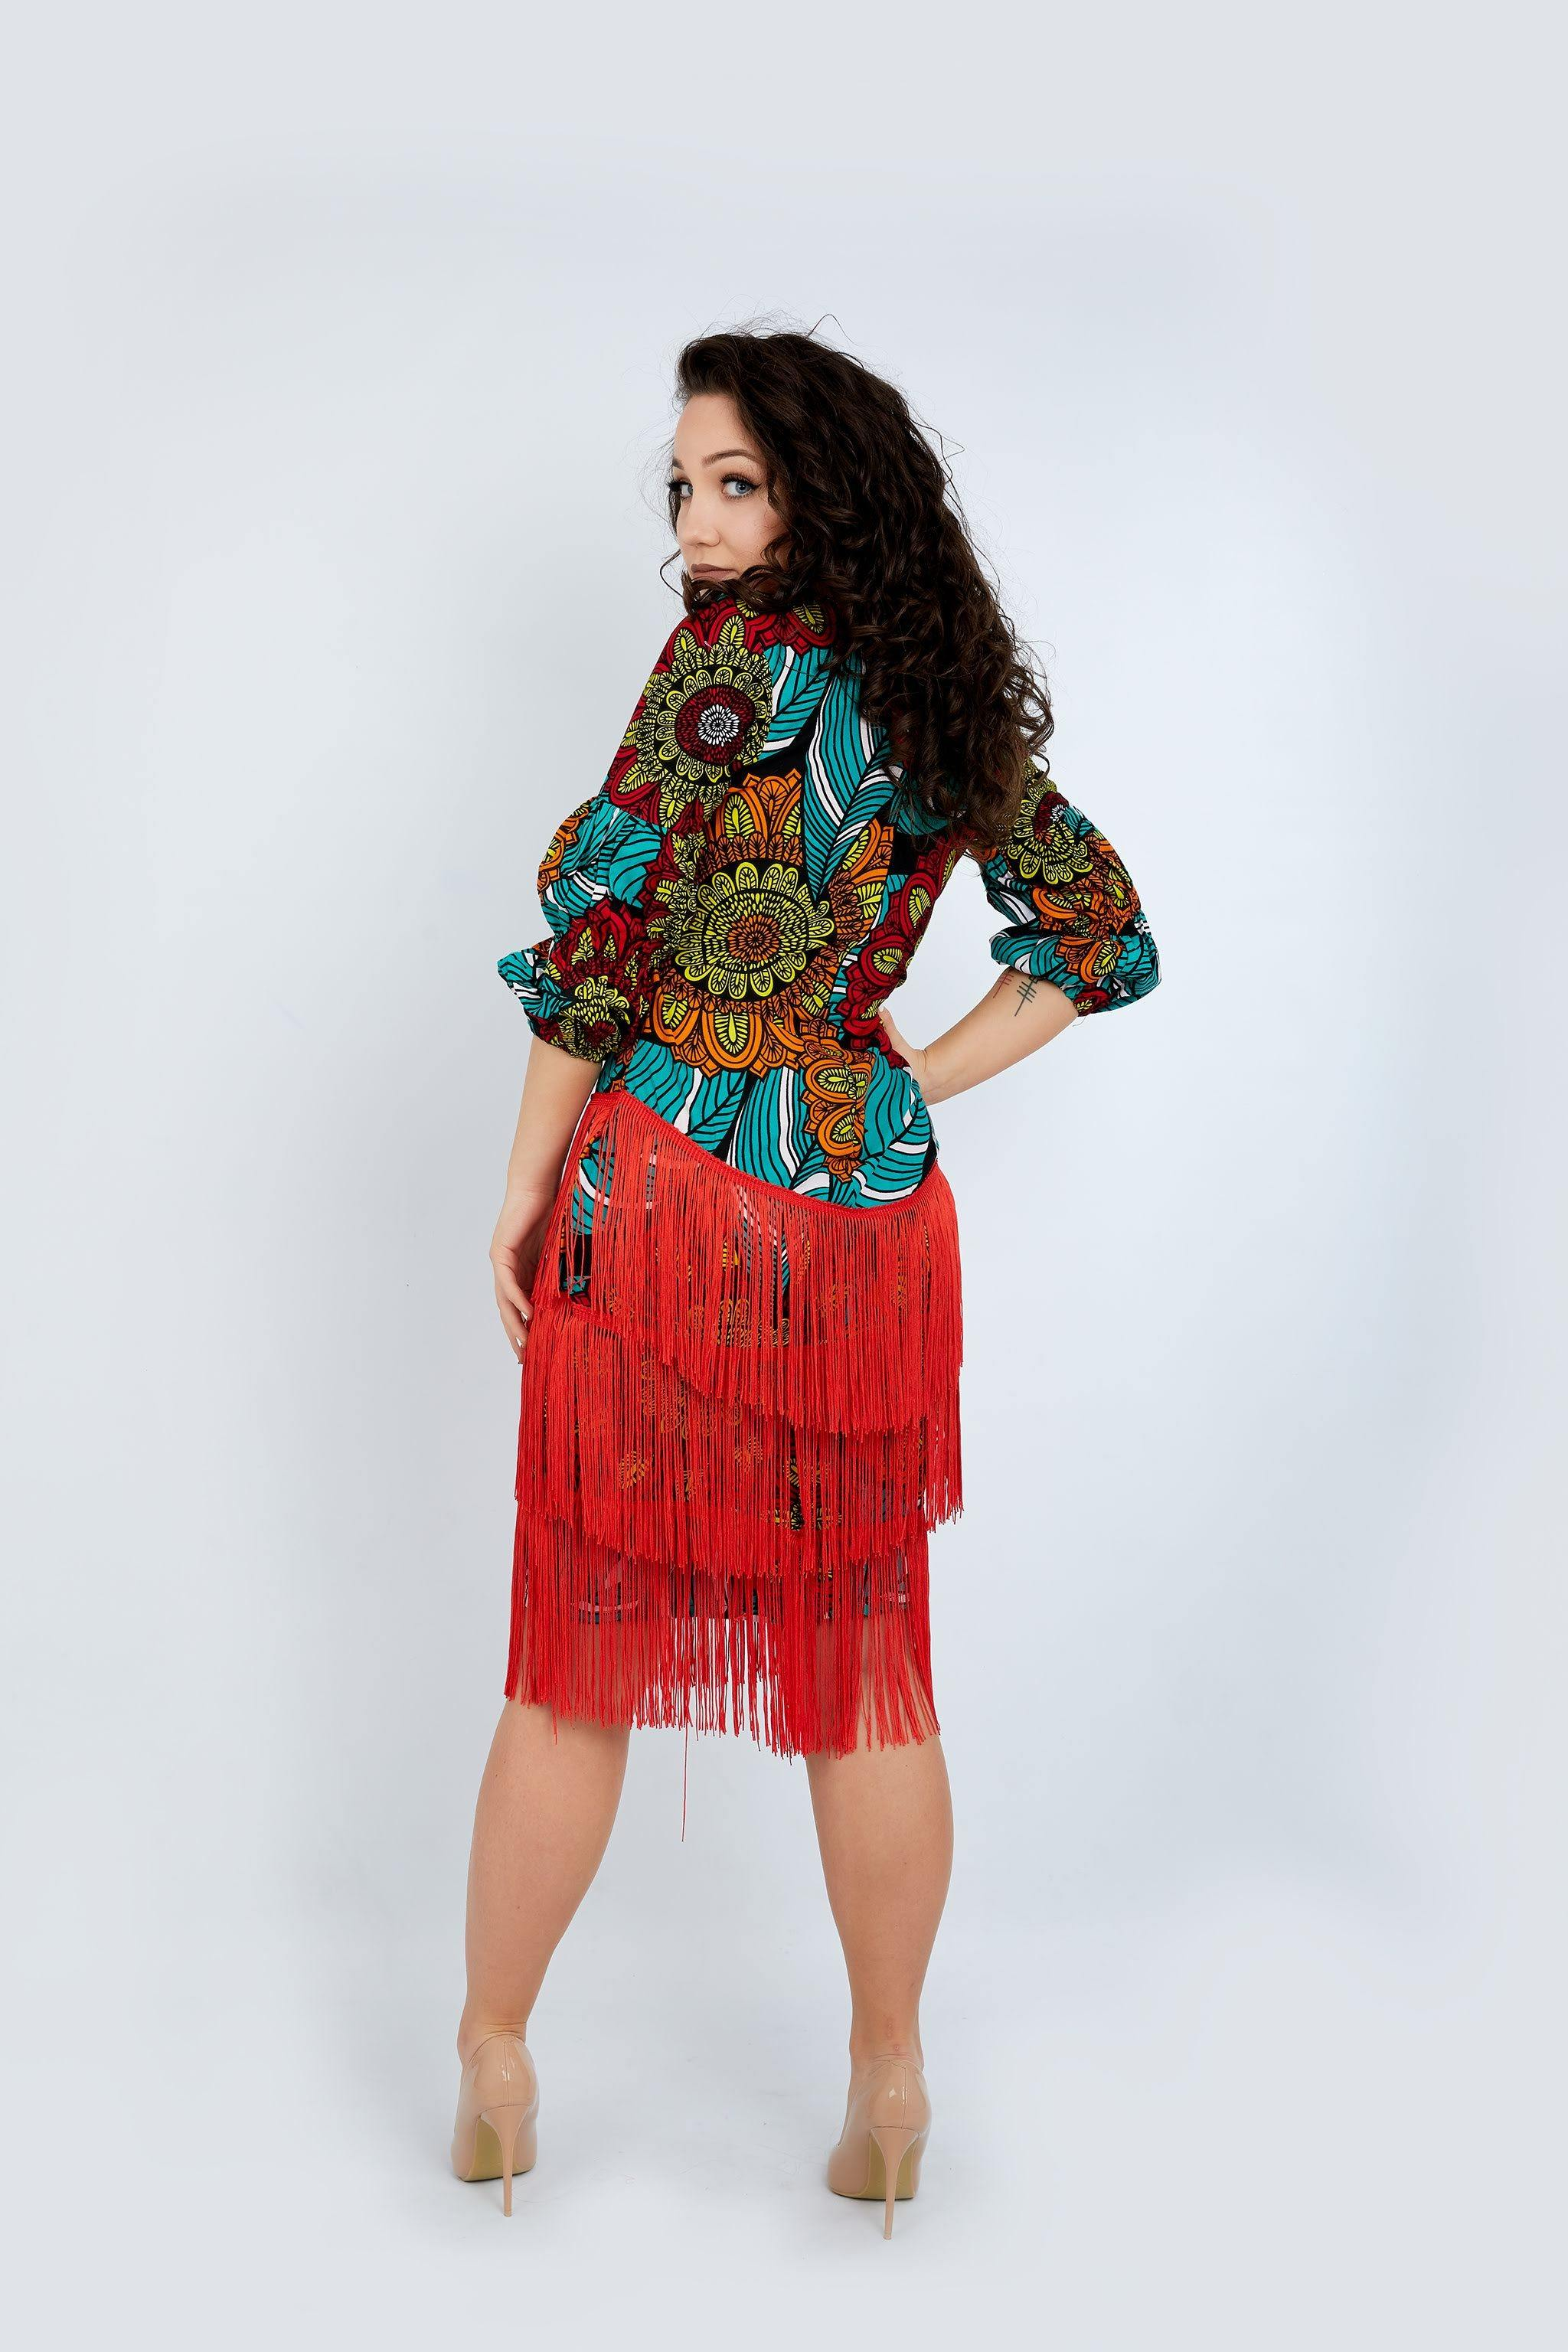 WAA- Shimmy Shimmy Ankara Dress - waafashion